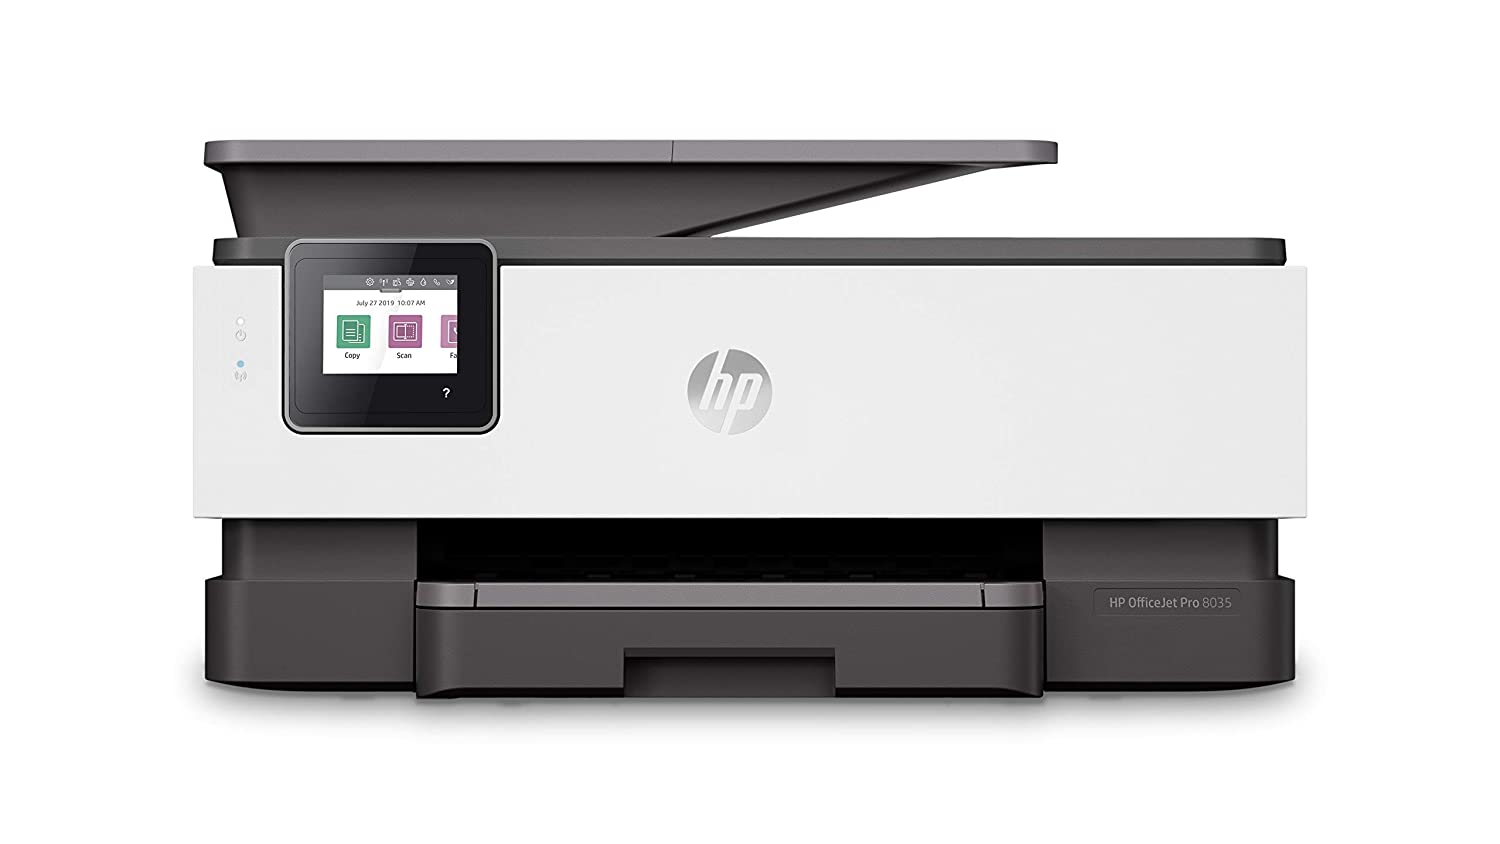 HP OfficeJet Pro 8035 All-in-One Wireless Printer - Includes 8 Months of Ink Delivered to Your Door, Smart Home Office Productivity - Basalt (5LJ23A)